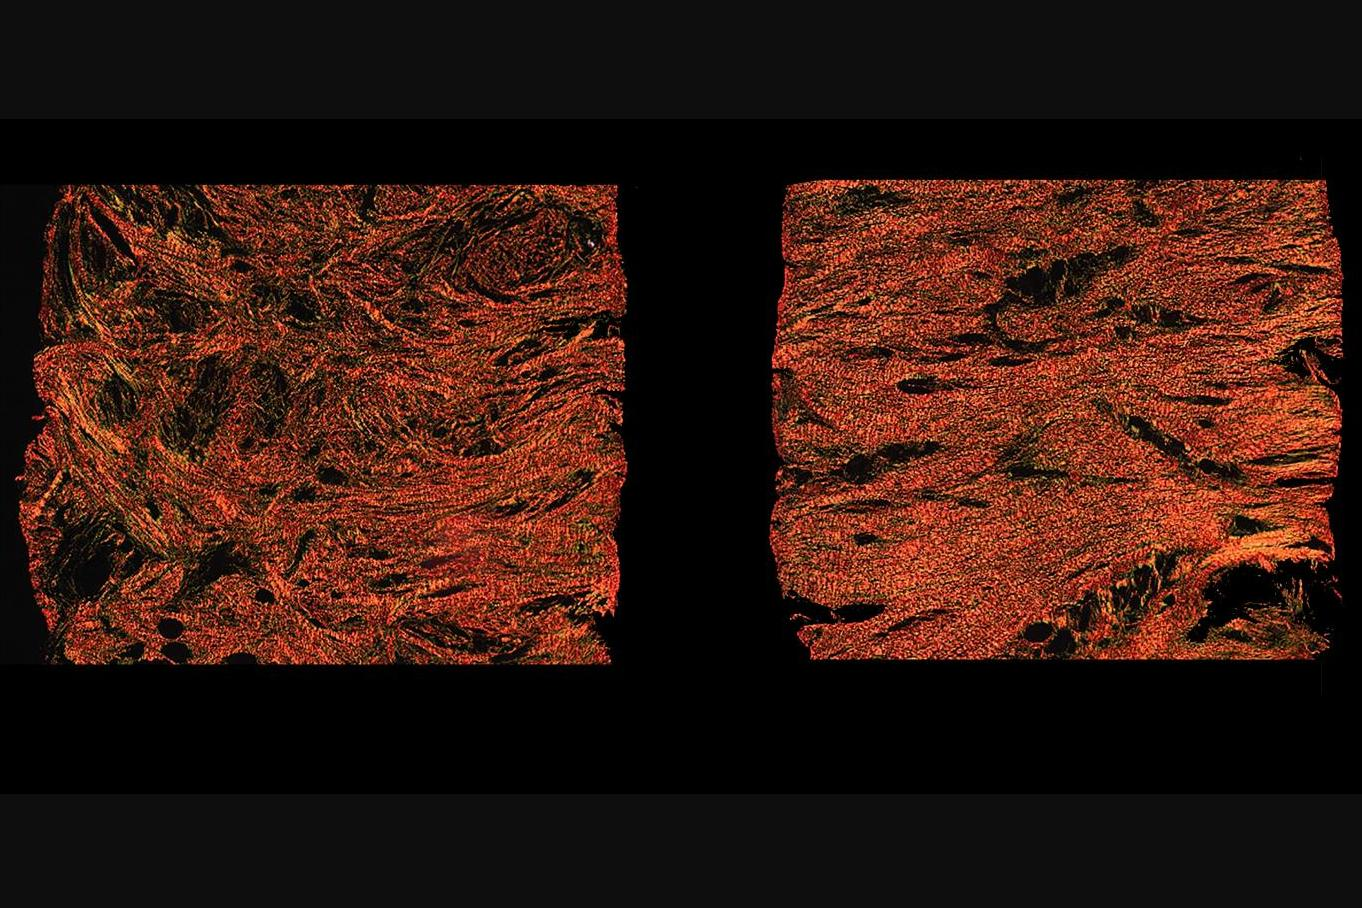 Microscope images of the enmeshed collagen fibers in a scar treated with alphaCT1 (left) and the less flexible aligned fibers in a scar treated with a non-medicated gel (right)